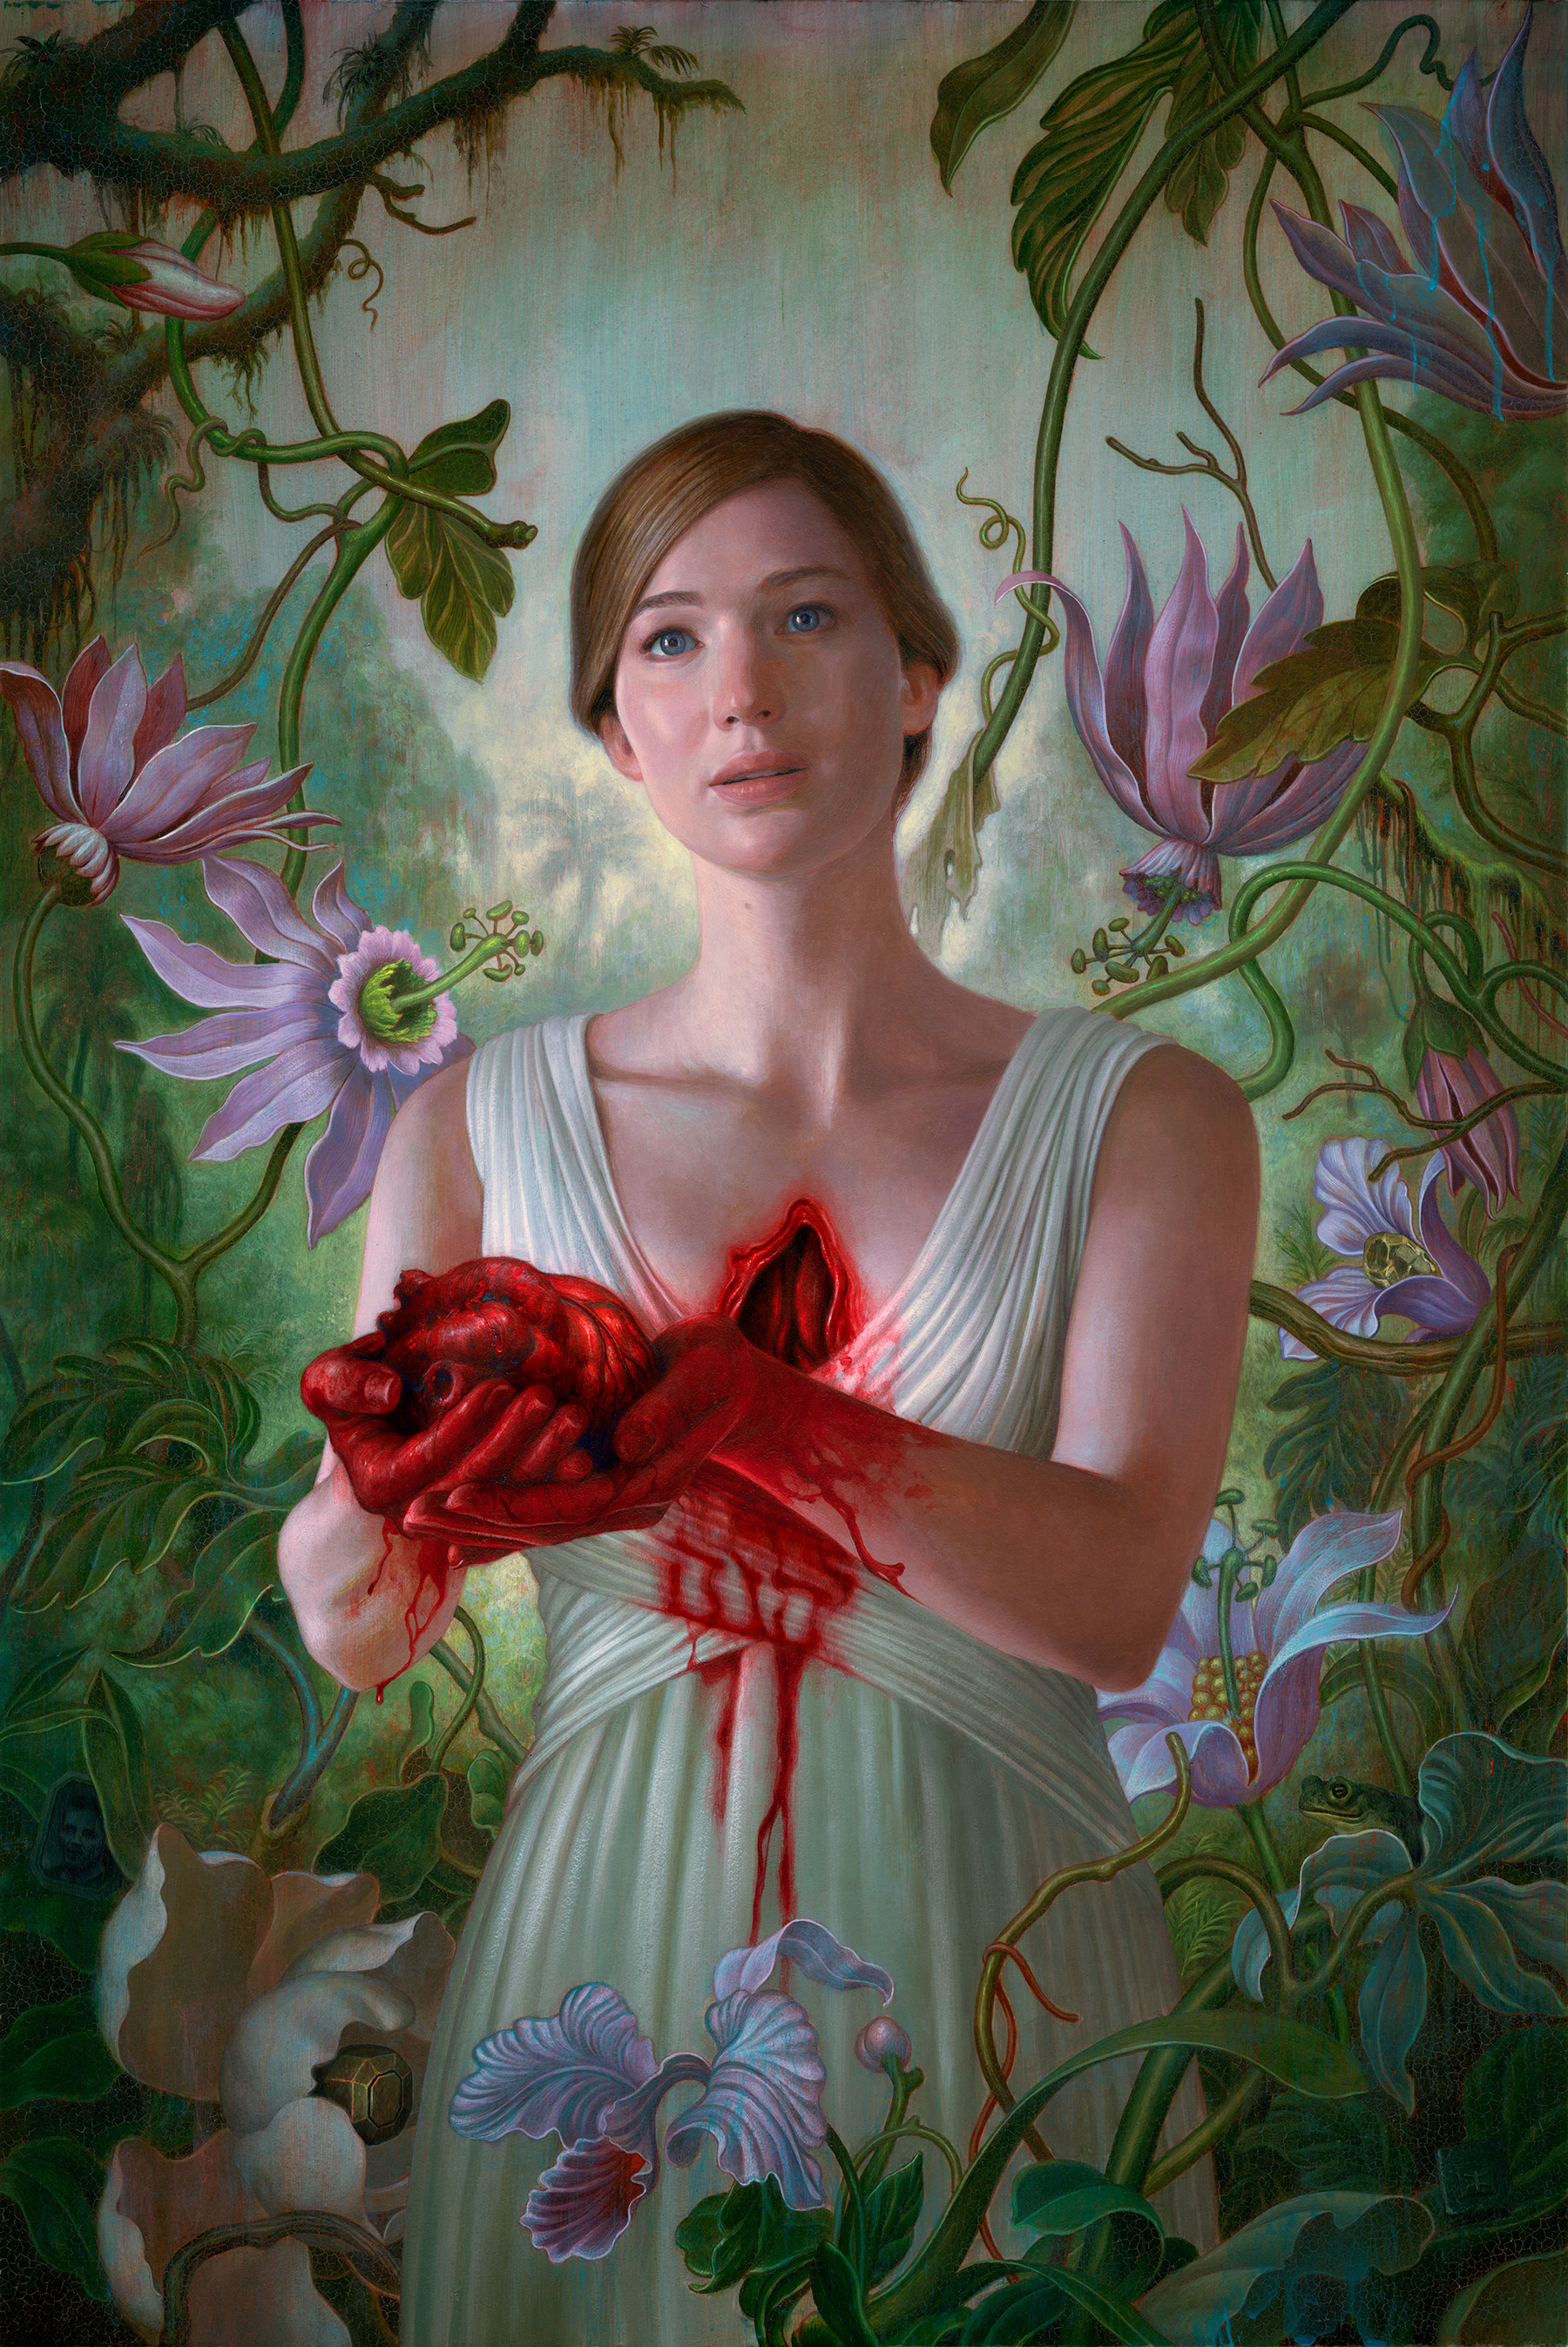 Official movie poster for mother! by James Jean